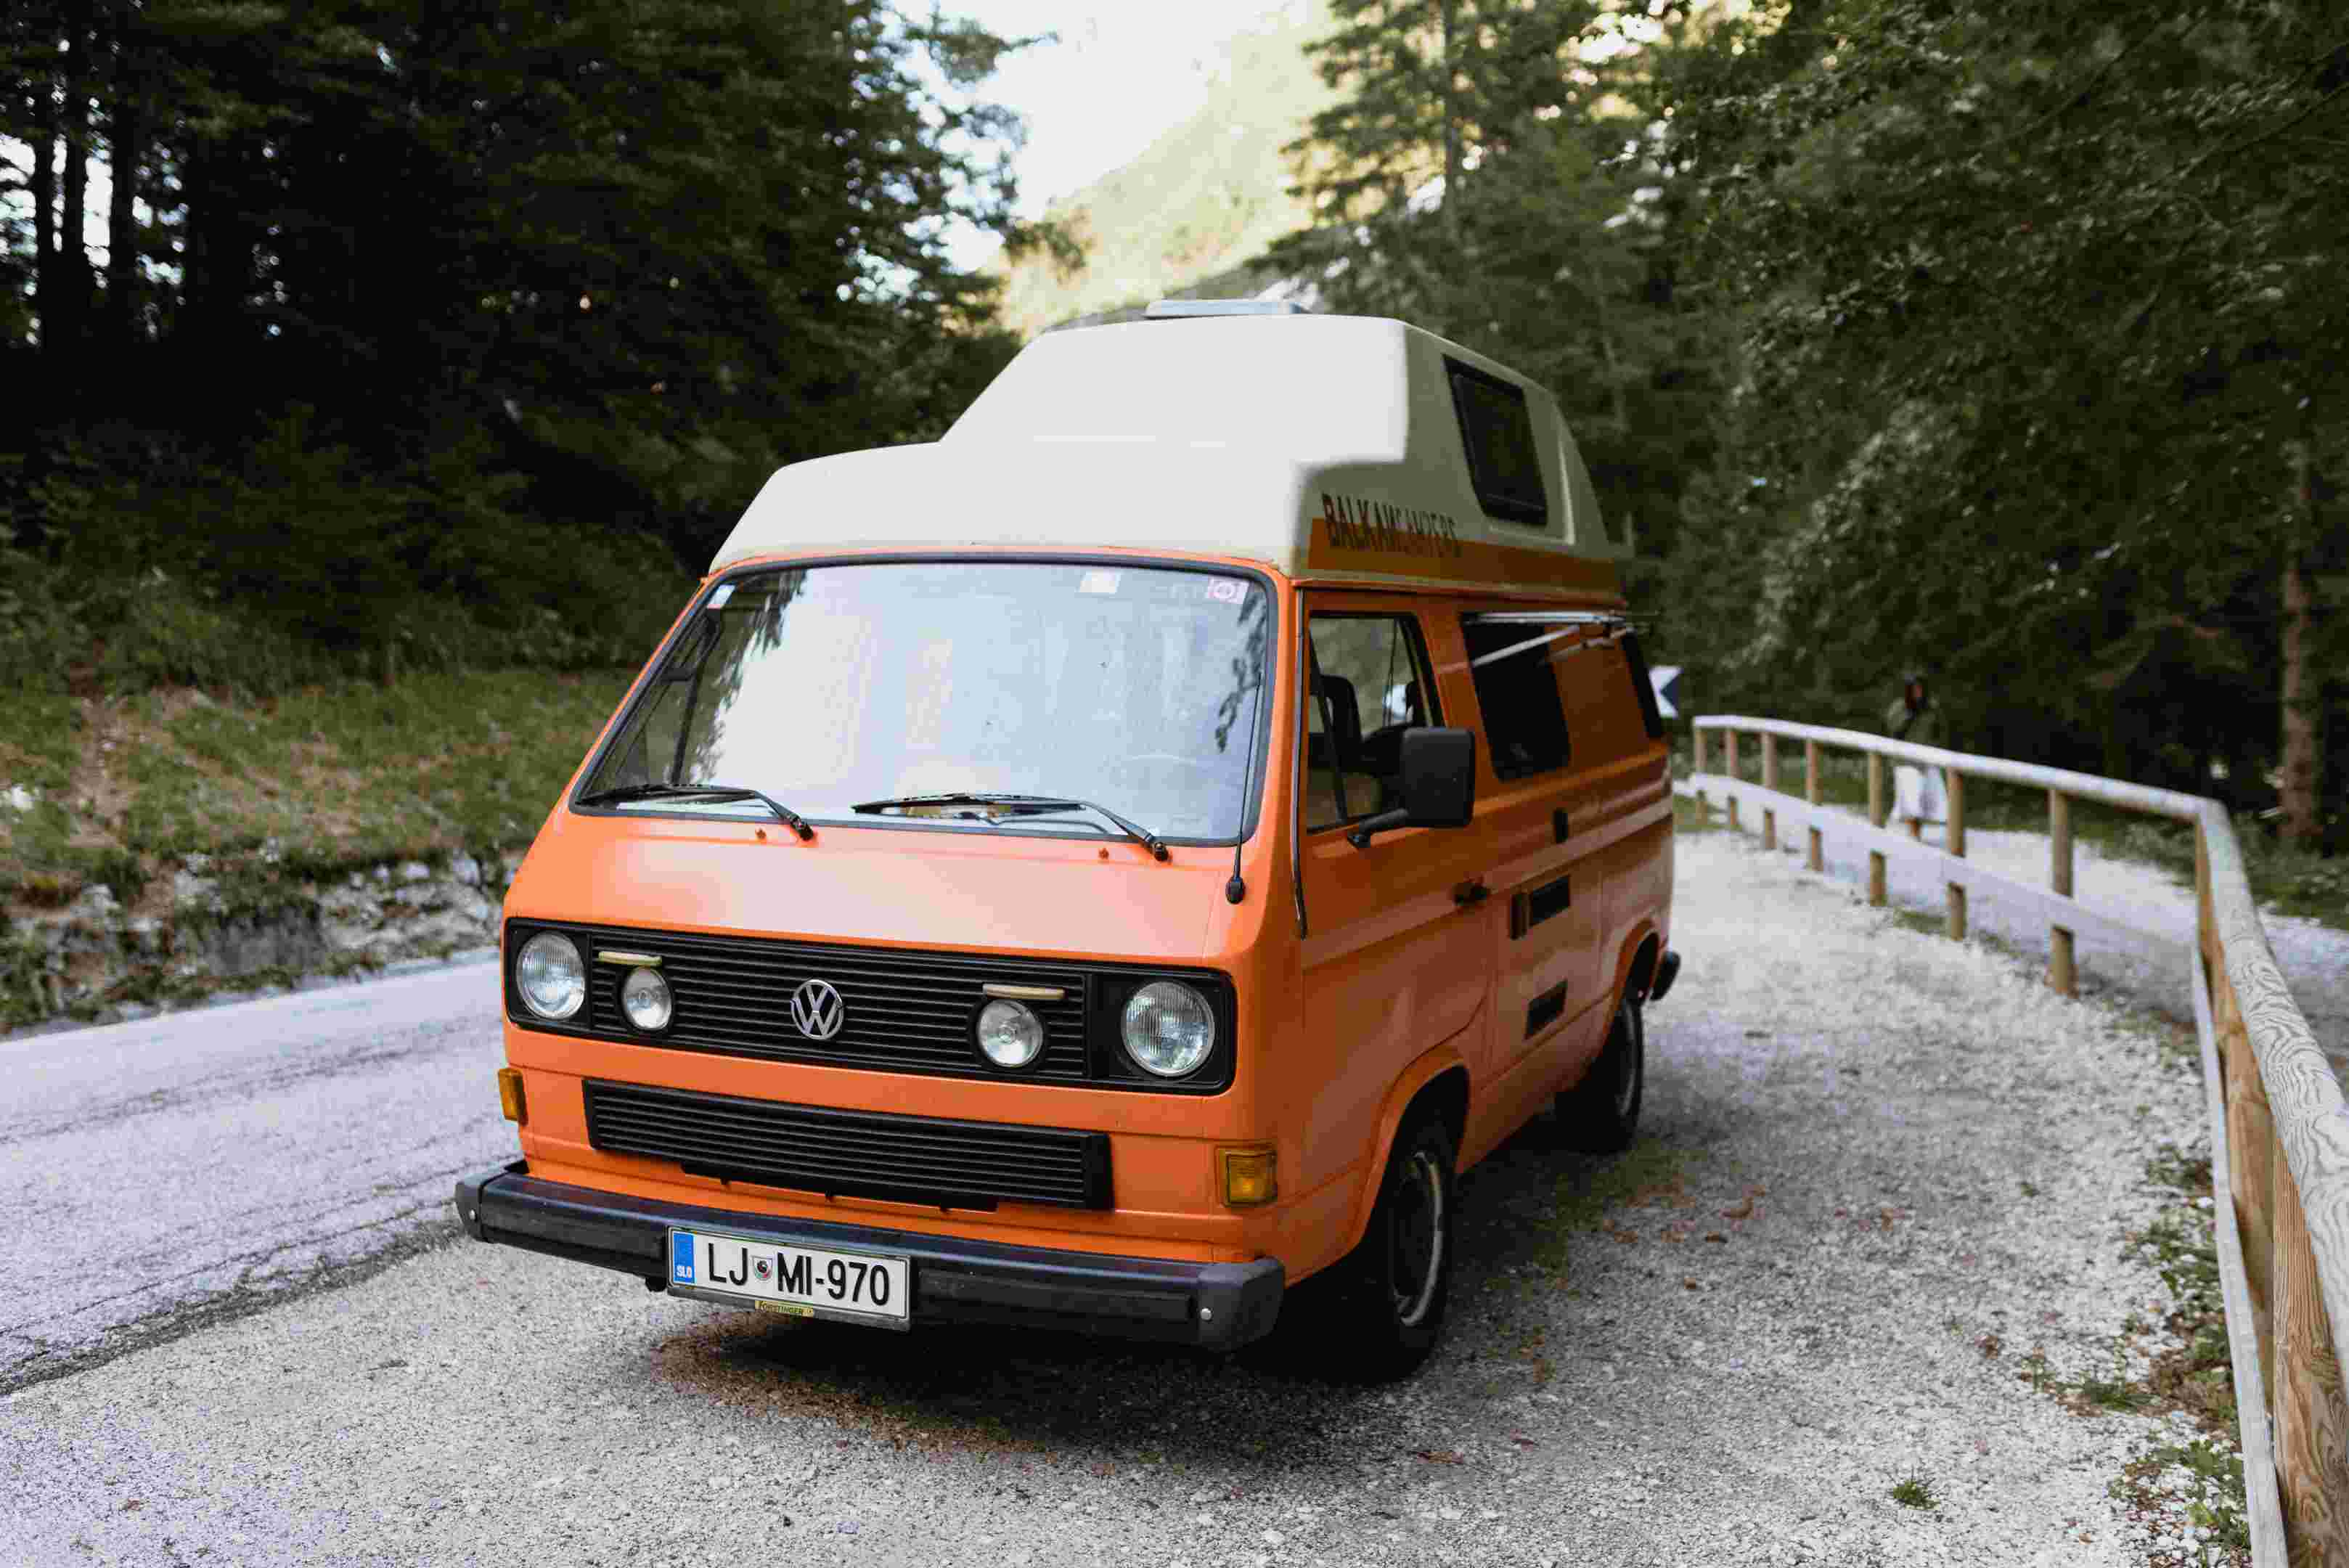 A VW T3 Campervan called Grga and for hire in ljubljana, Slovenia